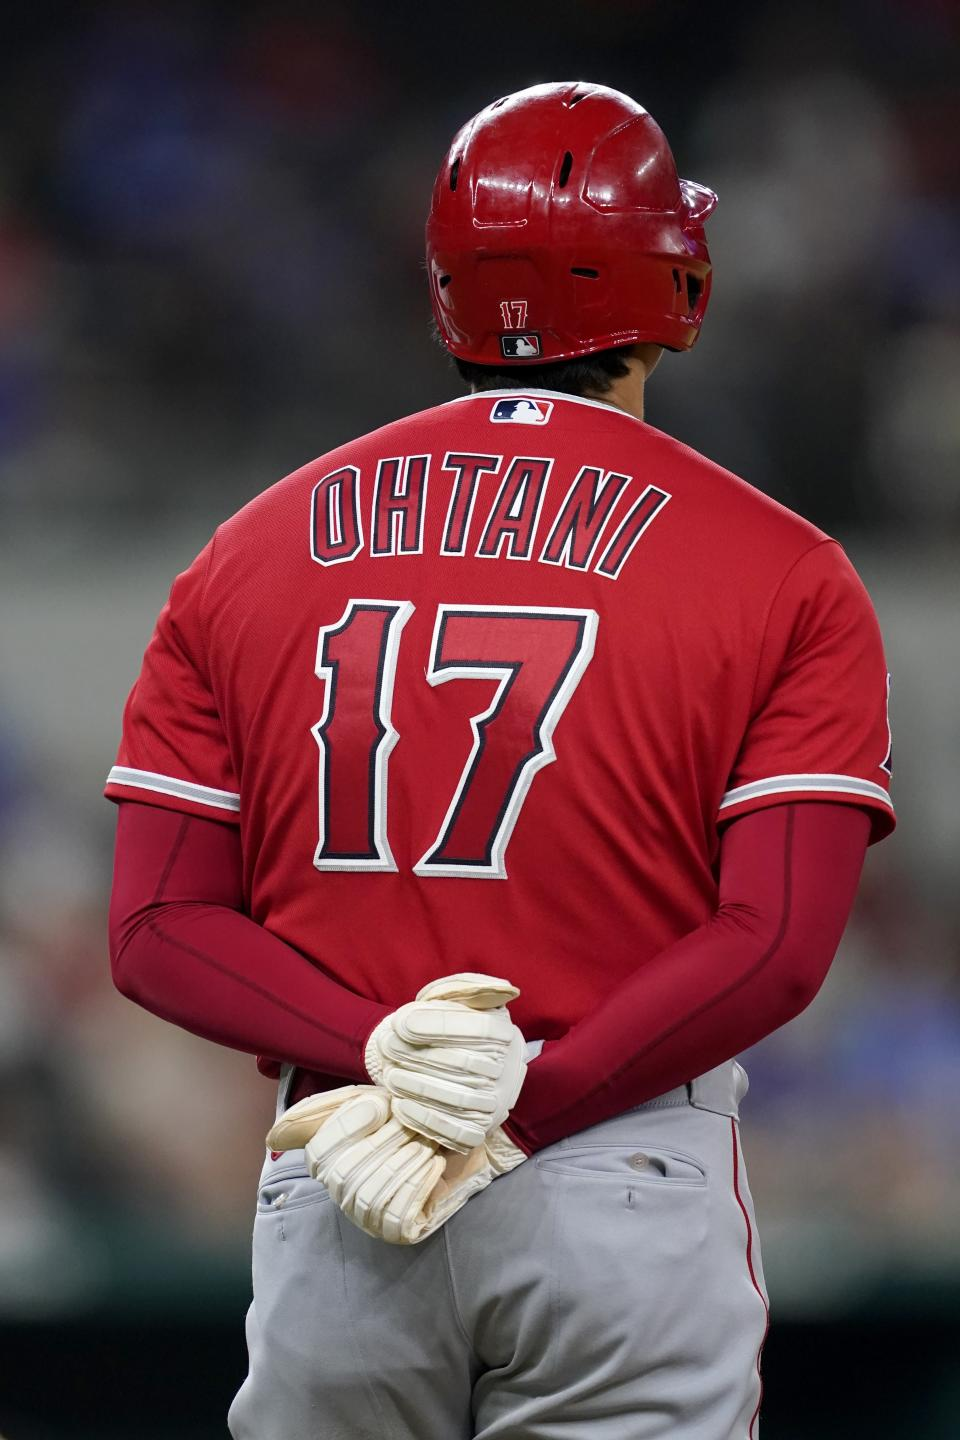 Los Angeles Angels' Shohei Ohtani stands on first after hitting for a single in the sixth inning of a baseball game against the Texas Rangers in Arlington, Texas, Wednesday, Sept. 29, 2021. (AP Photo/Tony Gutierrez)